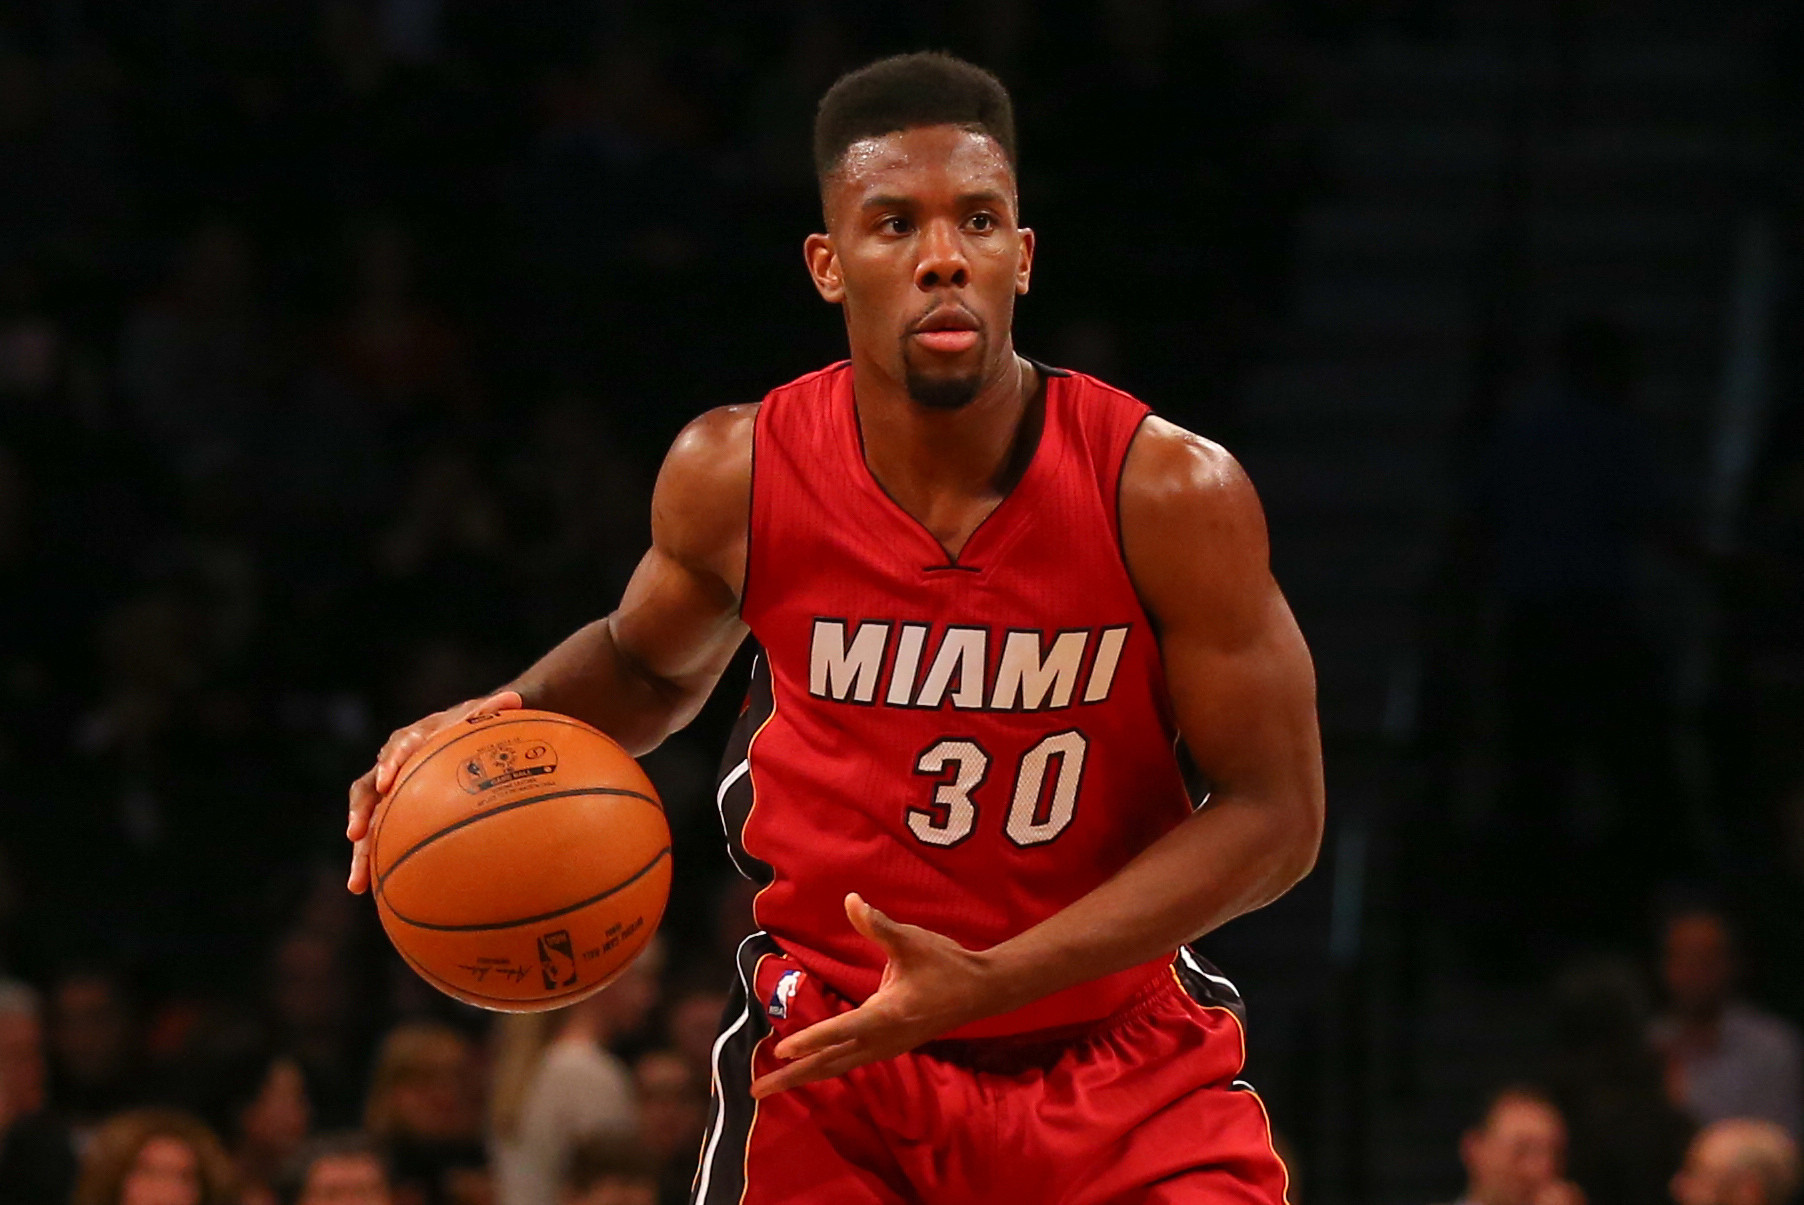 Miami heat updated news - Miami Heat Rumors And News Miami Heat Norris Cole And Luol Deng May Play Sunday